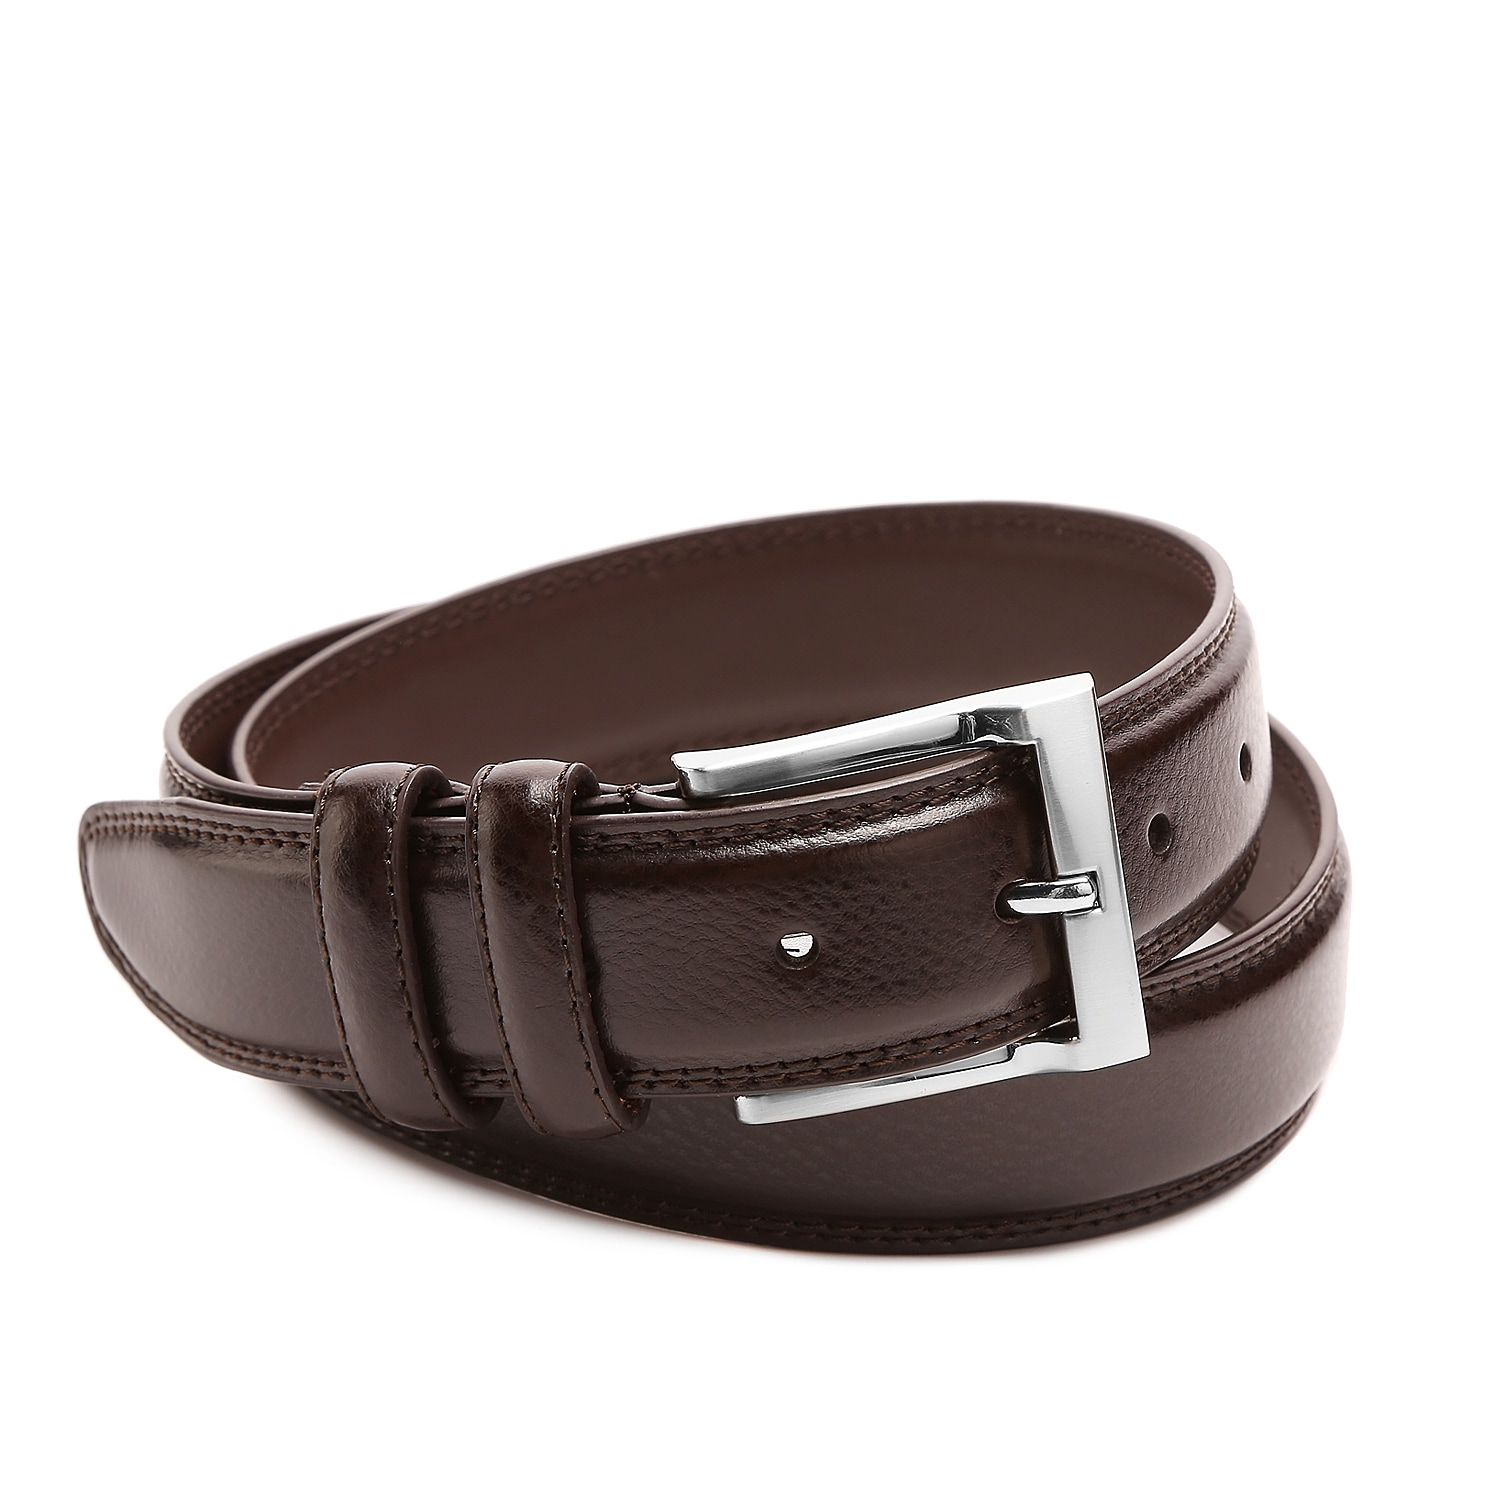 Every guy needs a simple leather belt, look no further than the Pebble belt from Florsheim! This classic look goes with pretty much everything and is designed for long-lasting wear.